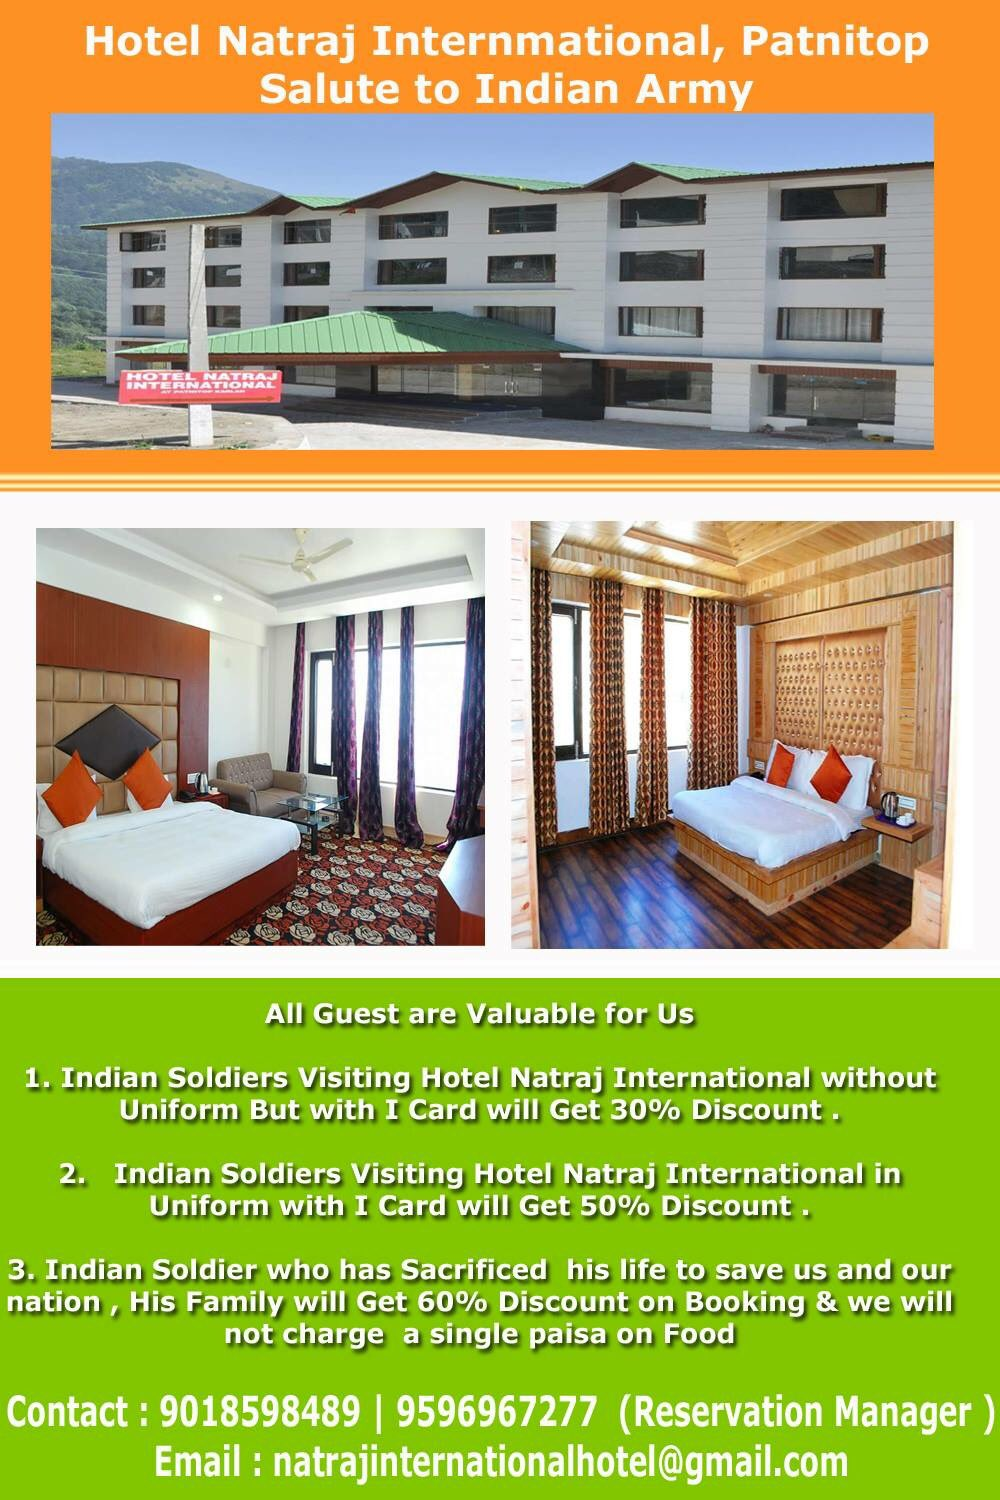 Hotel Natraj International Anu Sharma On Twitter Nationalism Has Neither Been Lost Nor Will